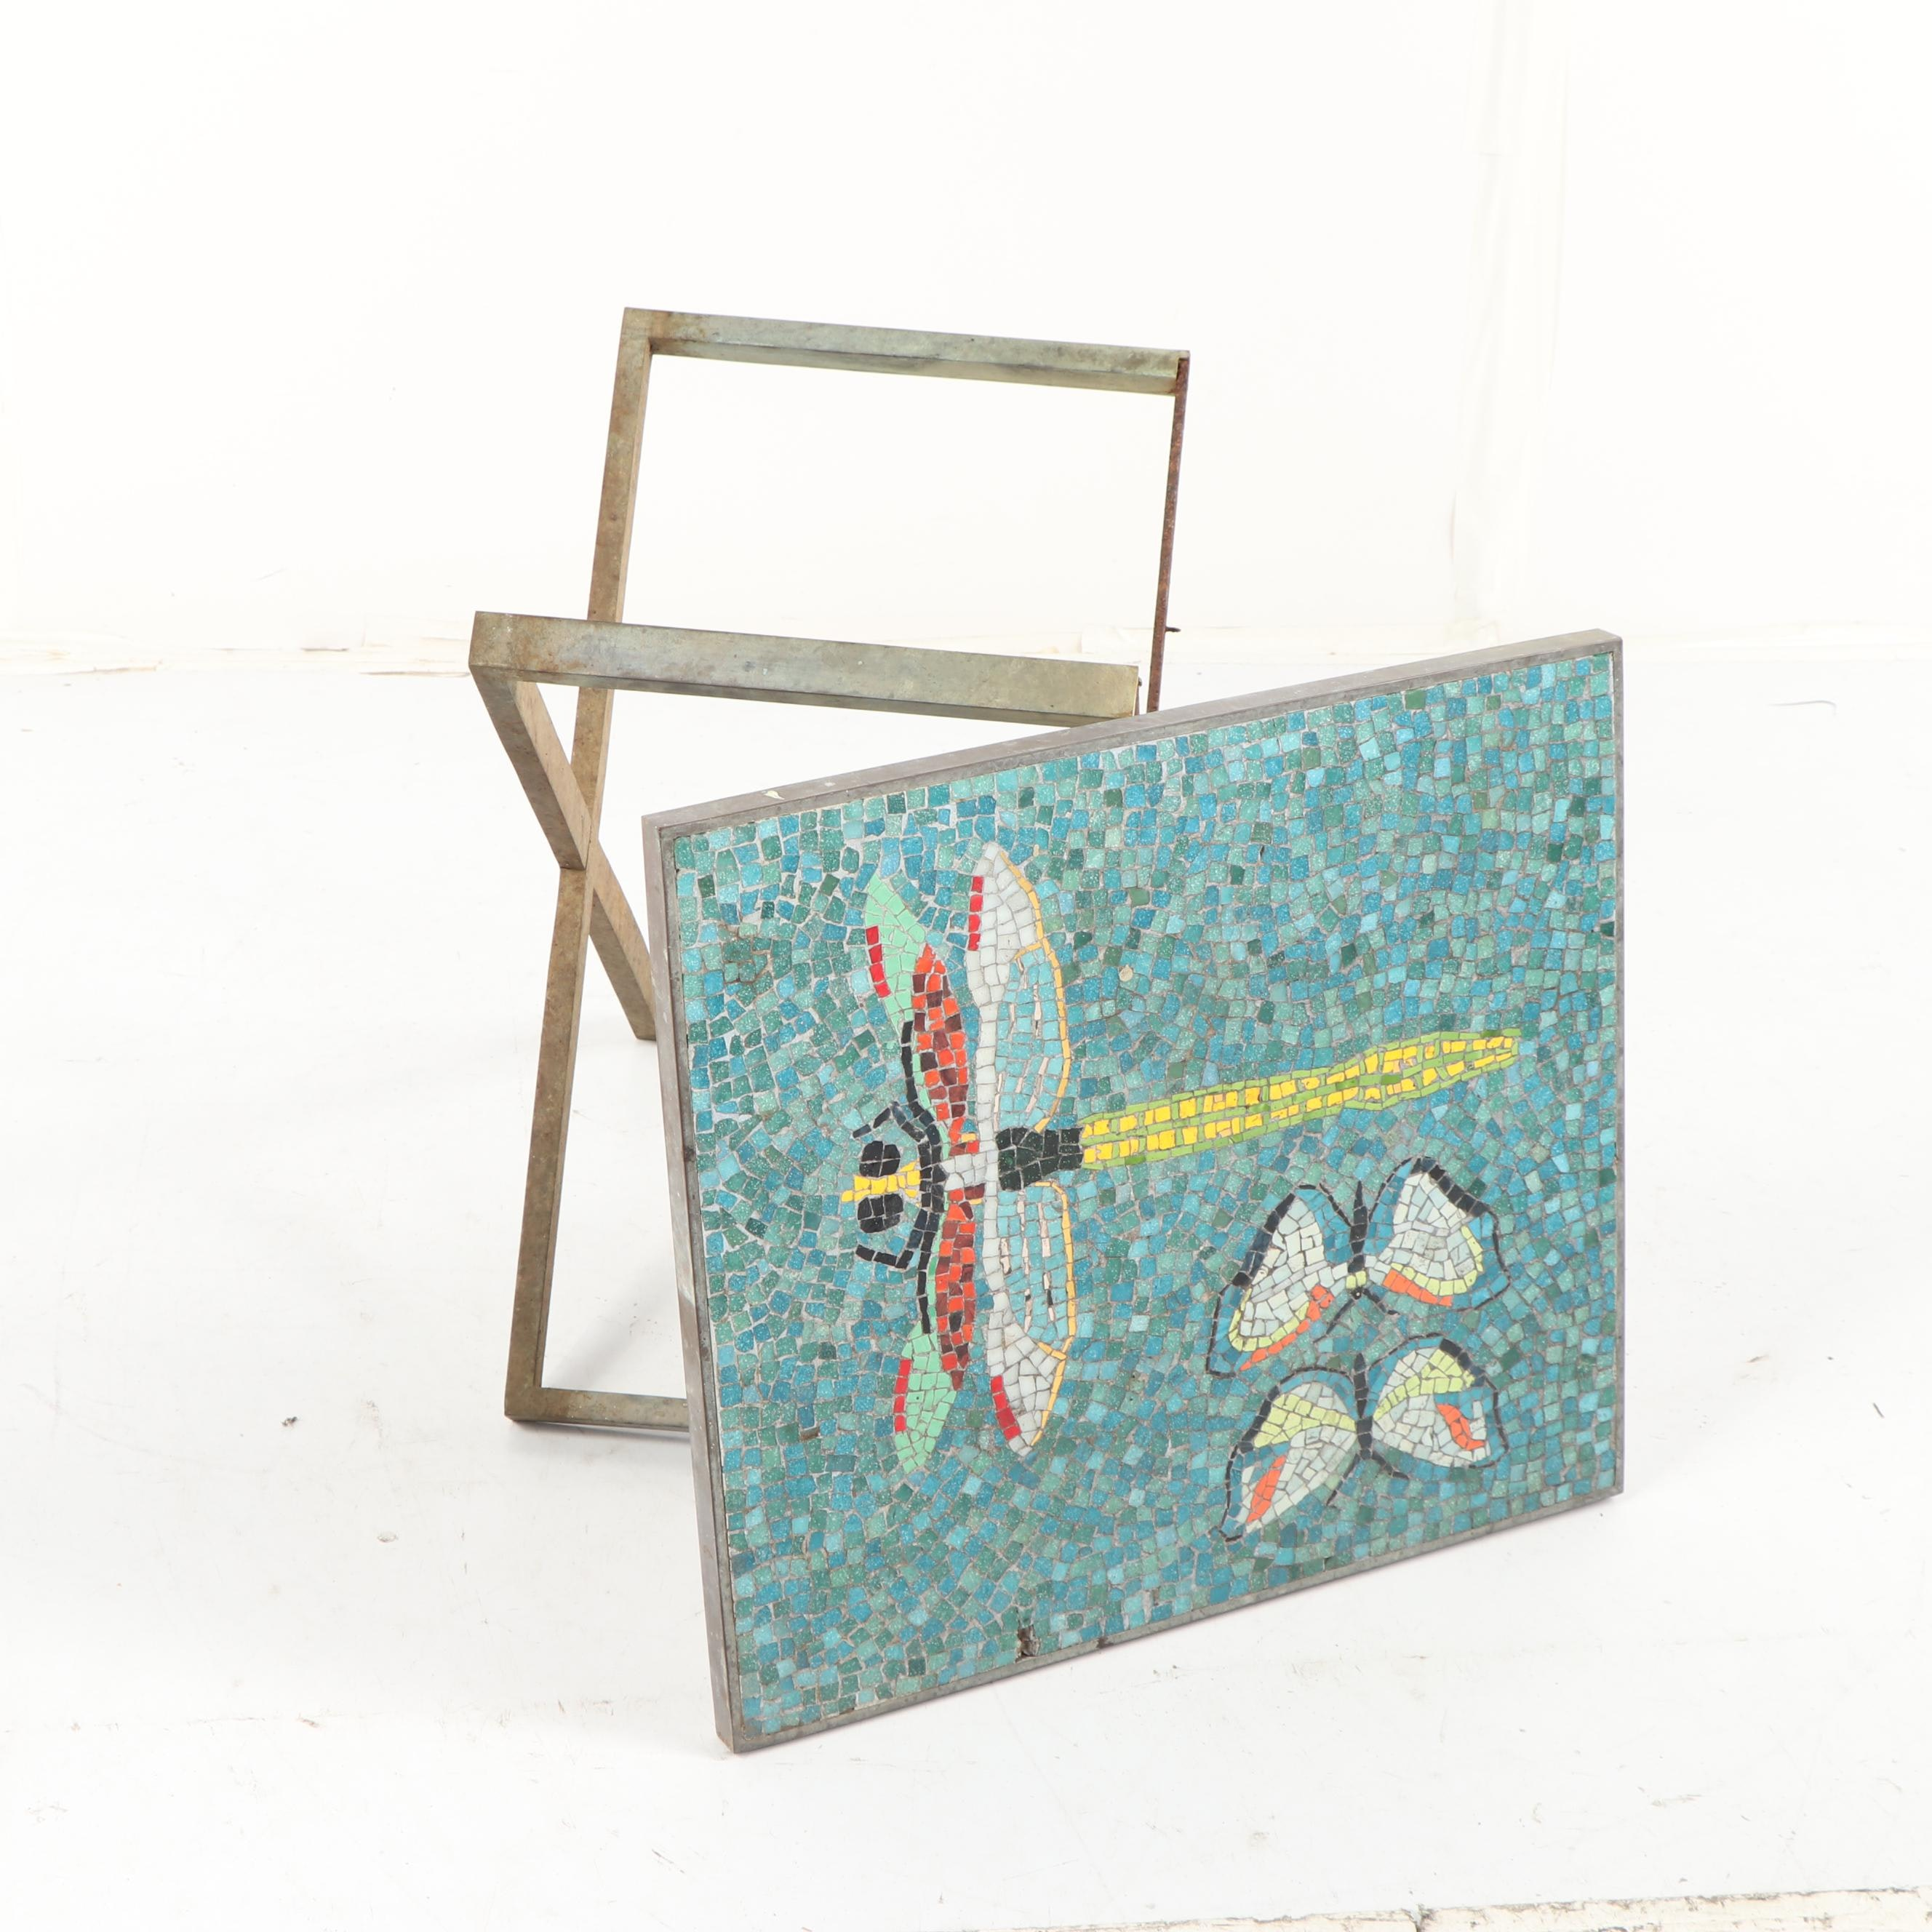 Dragonfly and Butterfly Mosaic Top X-Frame Base Side Table